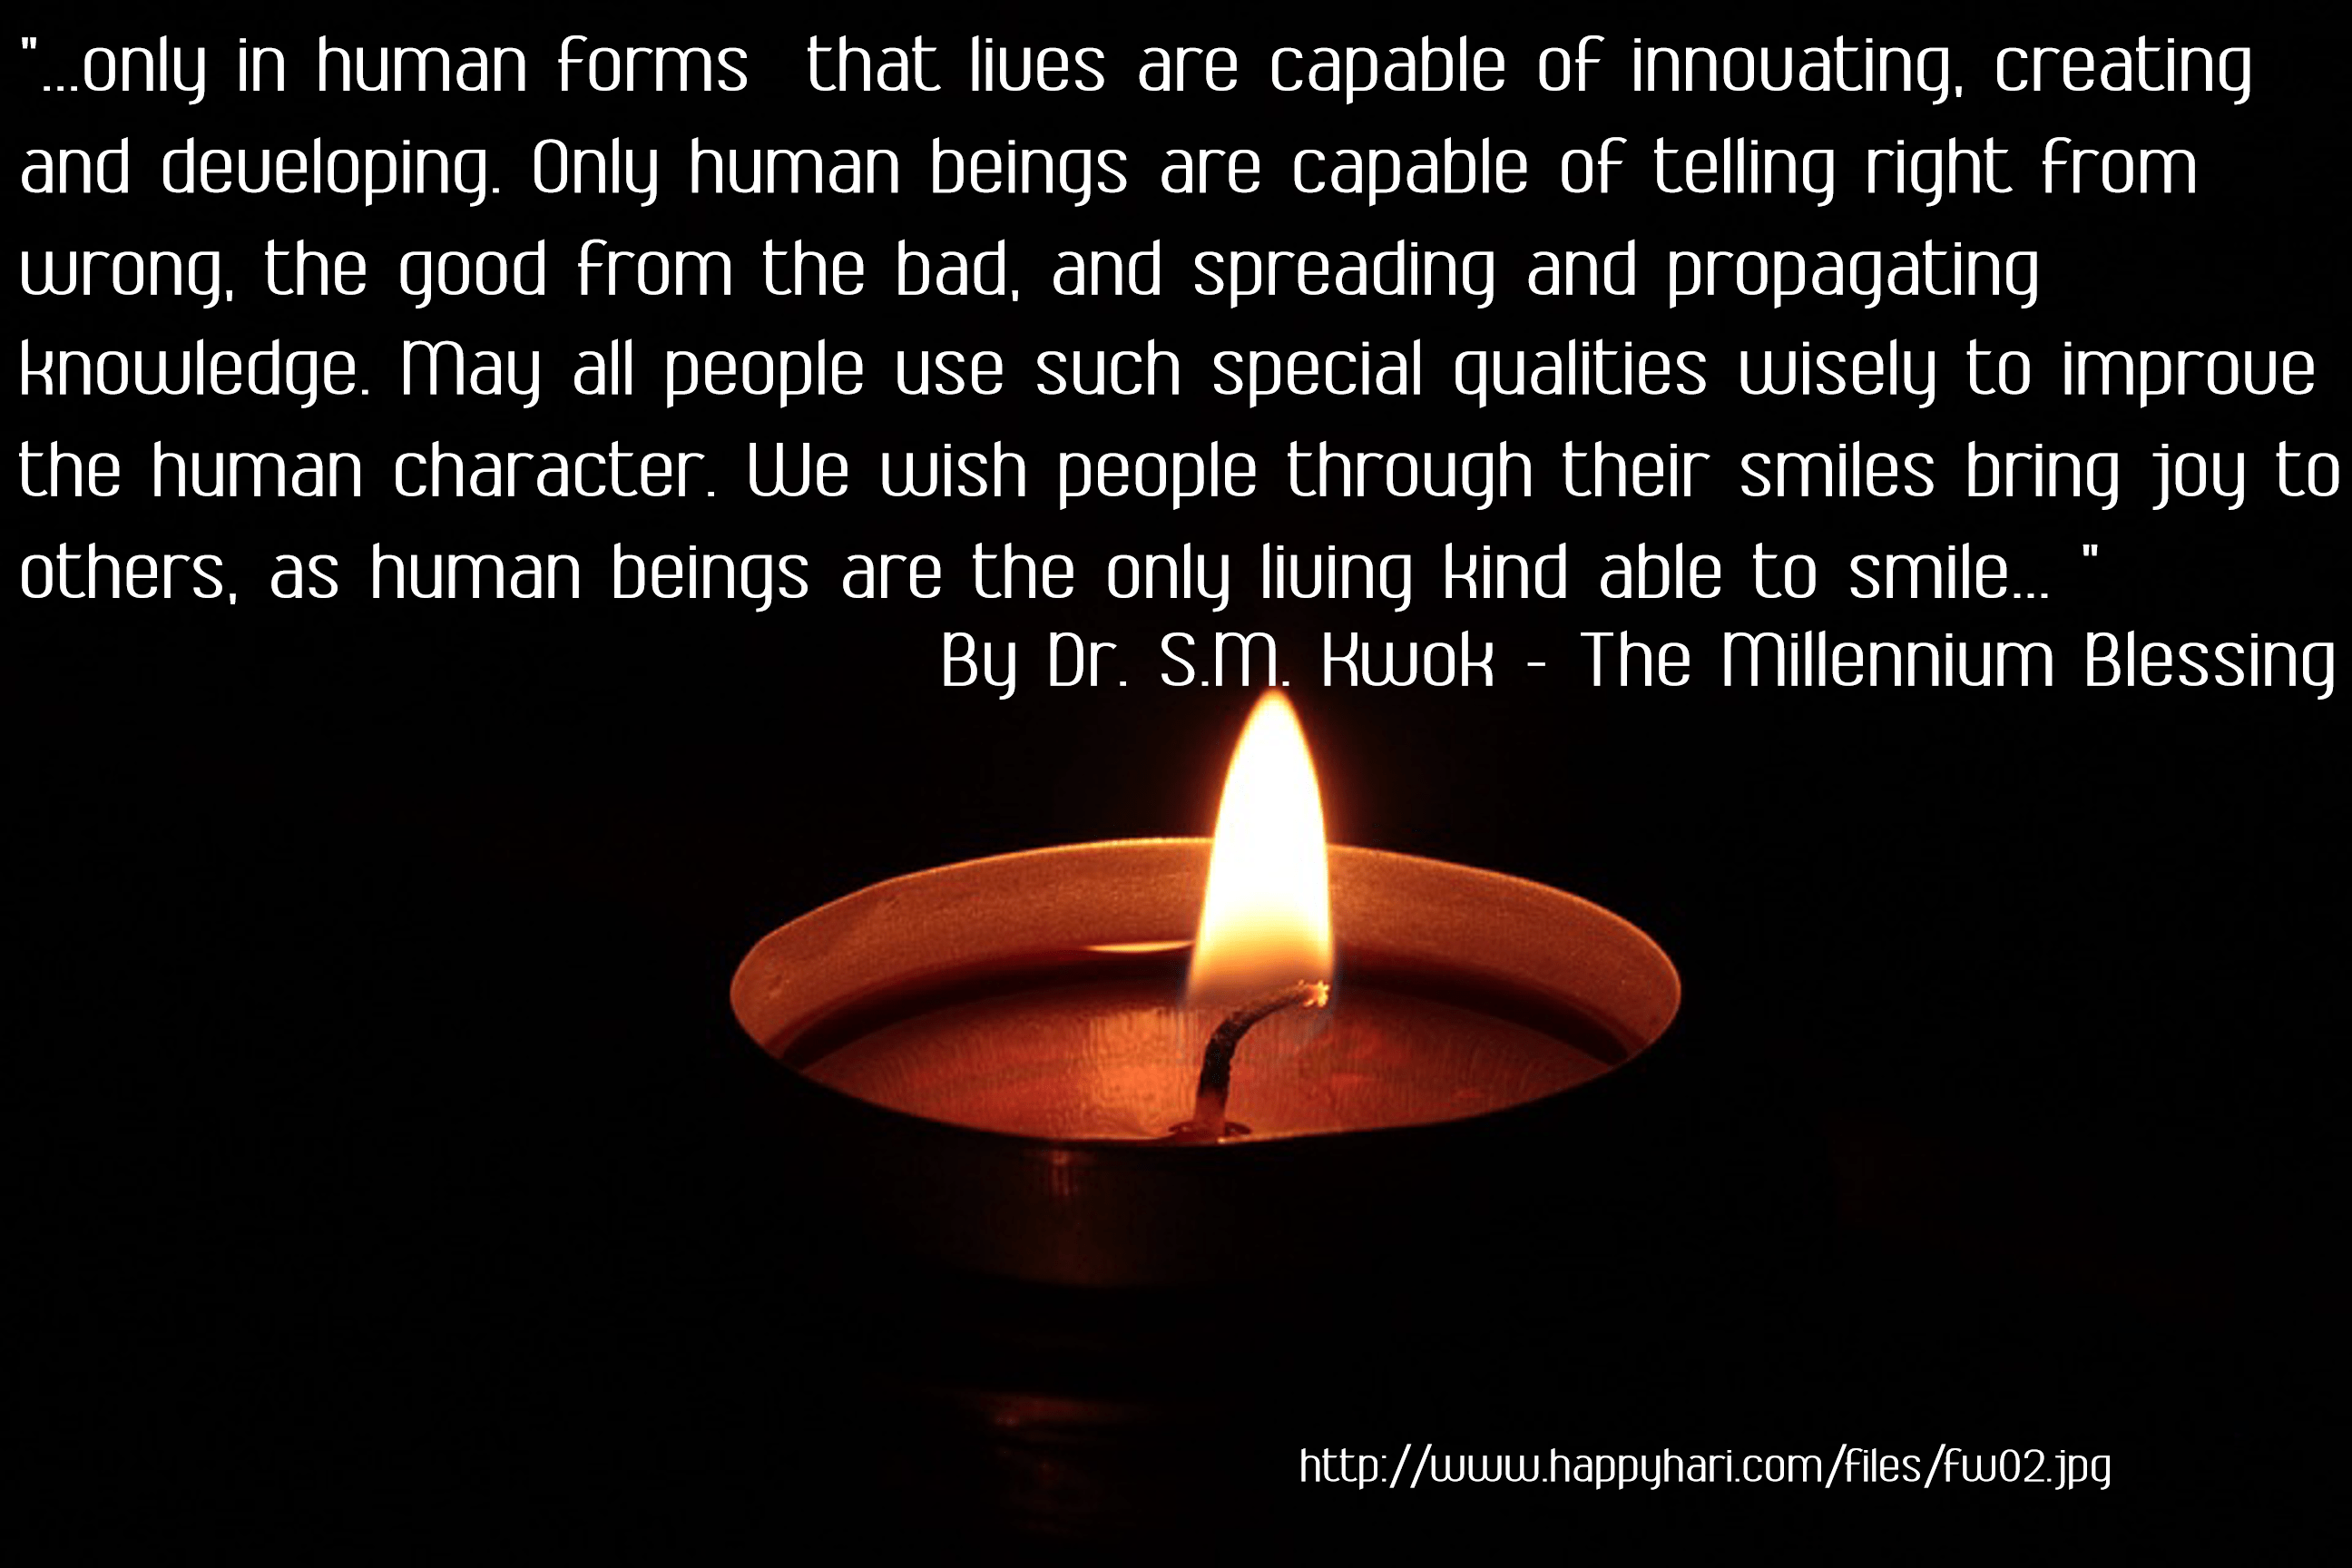 """…Only in human forms that lives are capable of innovating, creating and developing…"" – Dr. S.M. Kwok [2592×1728]"